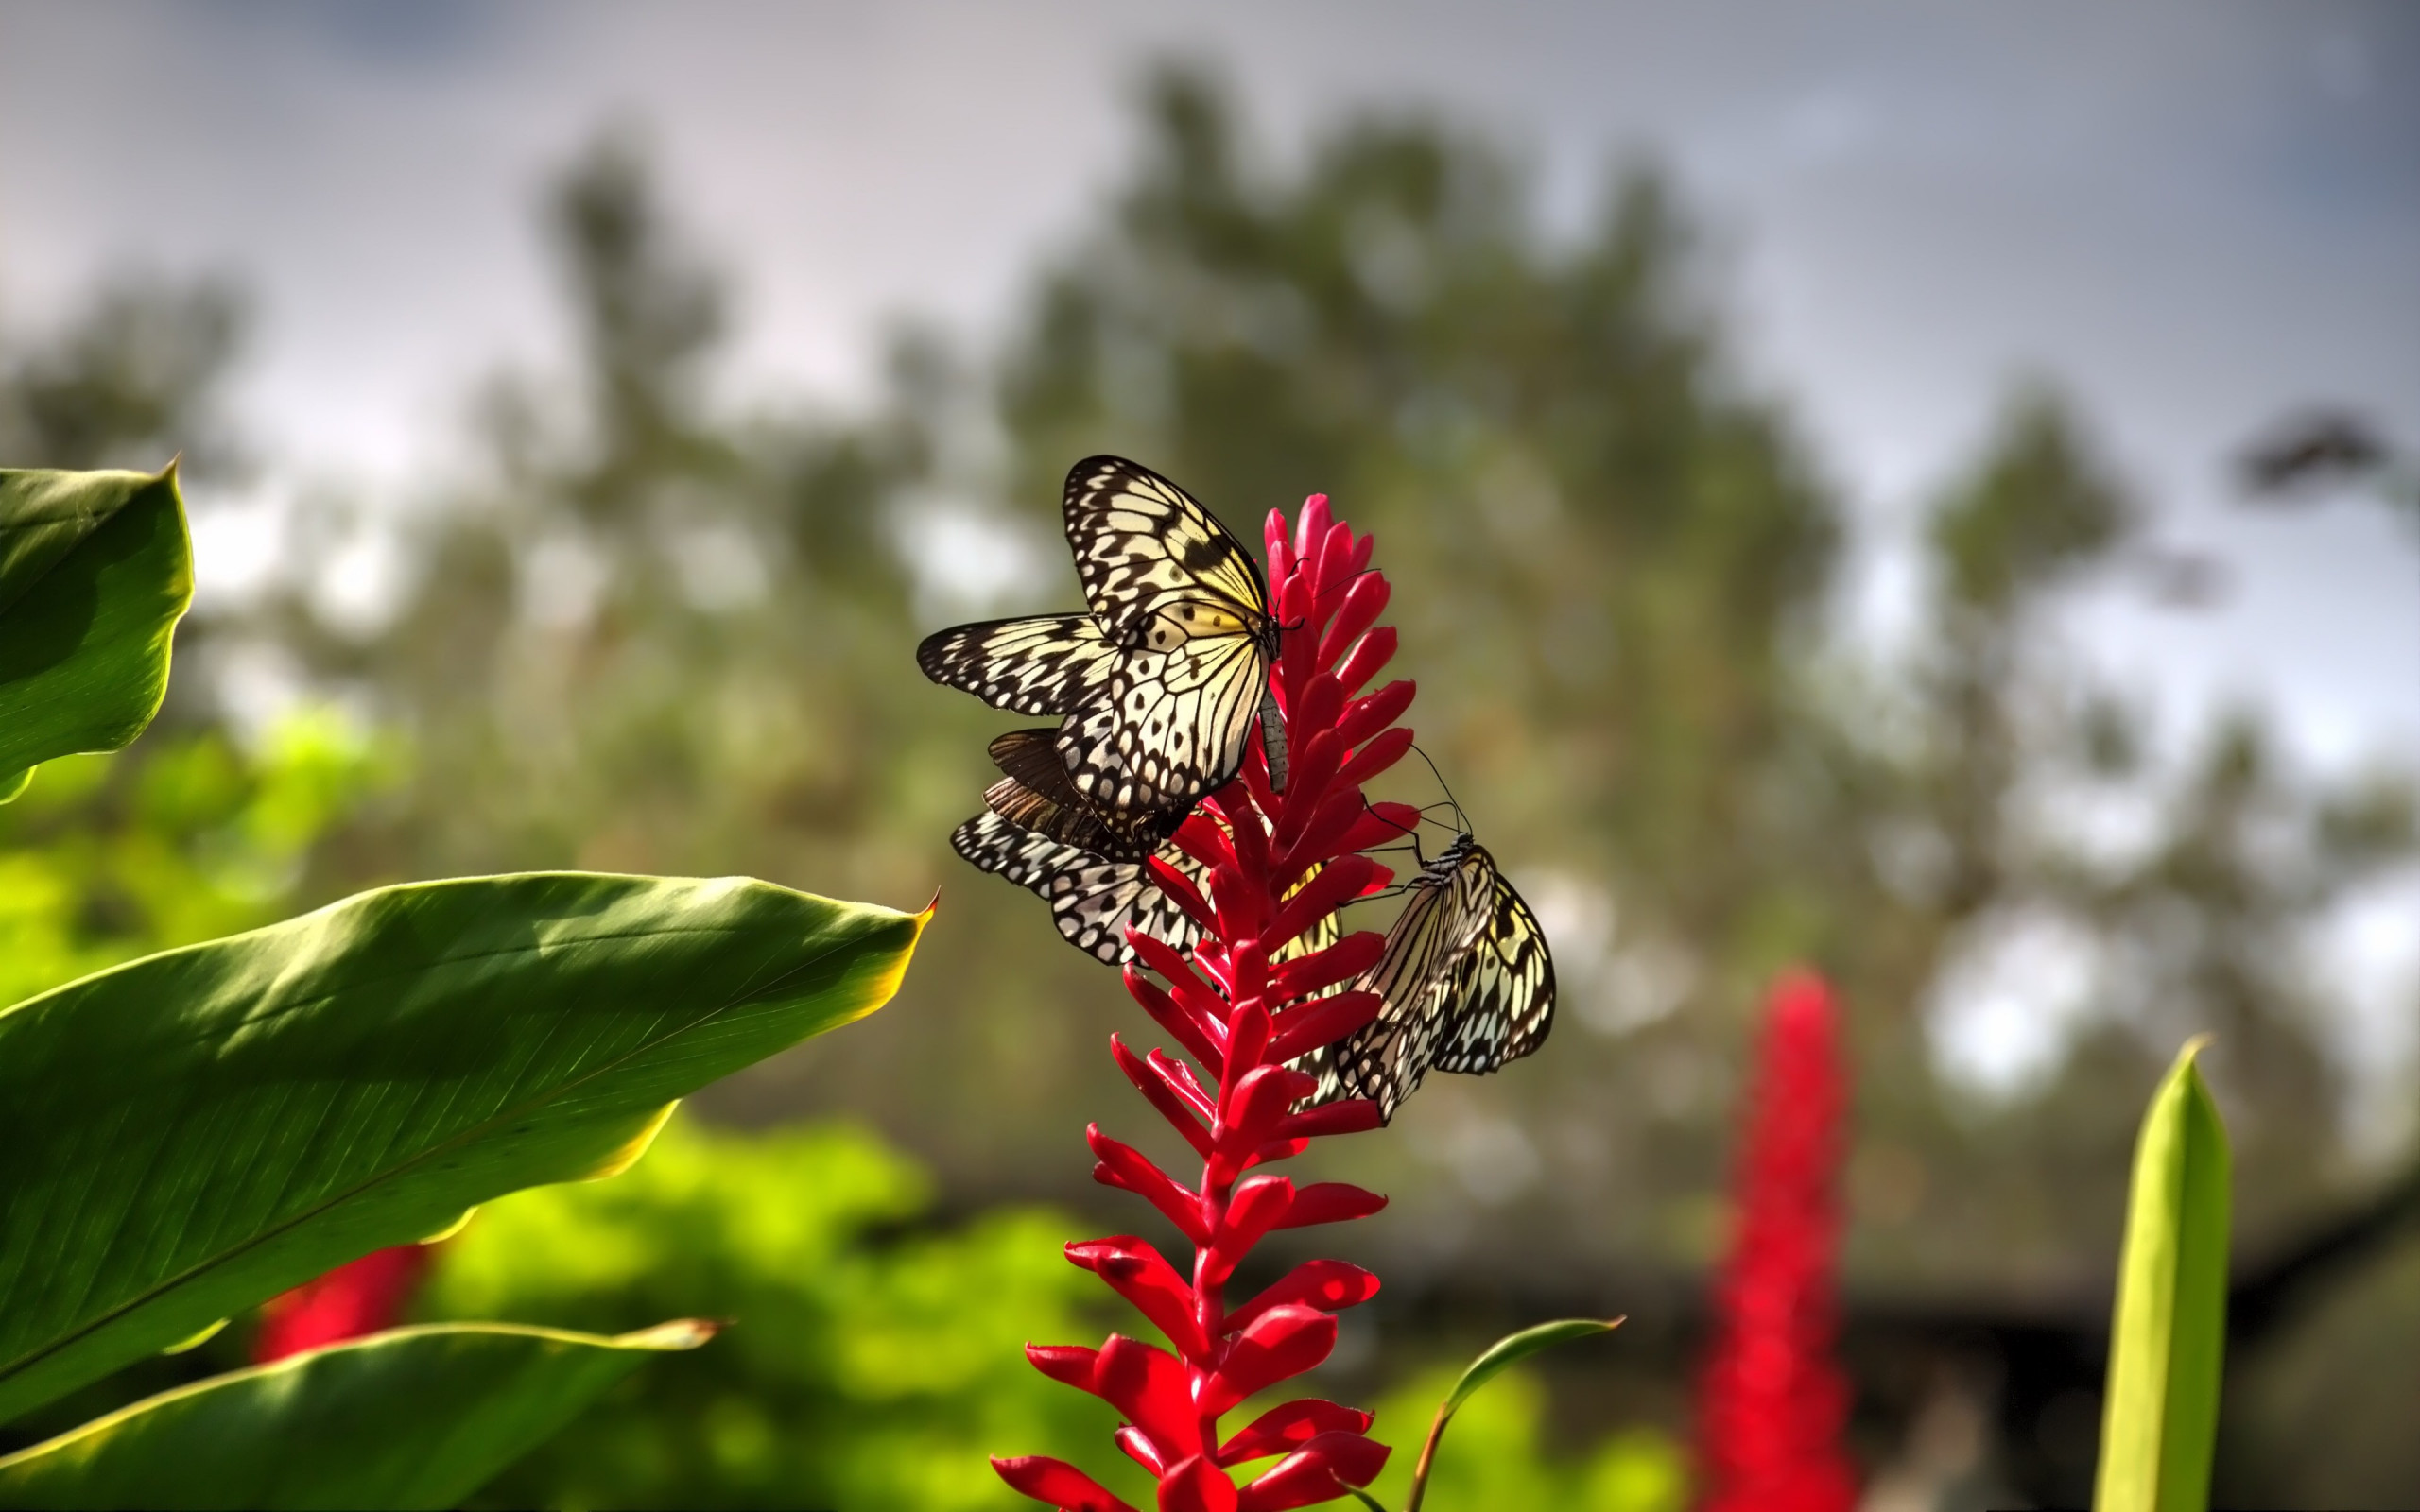 Butterflies on red flowers wallpaper 2560x1600